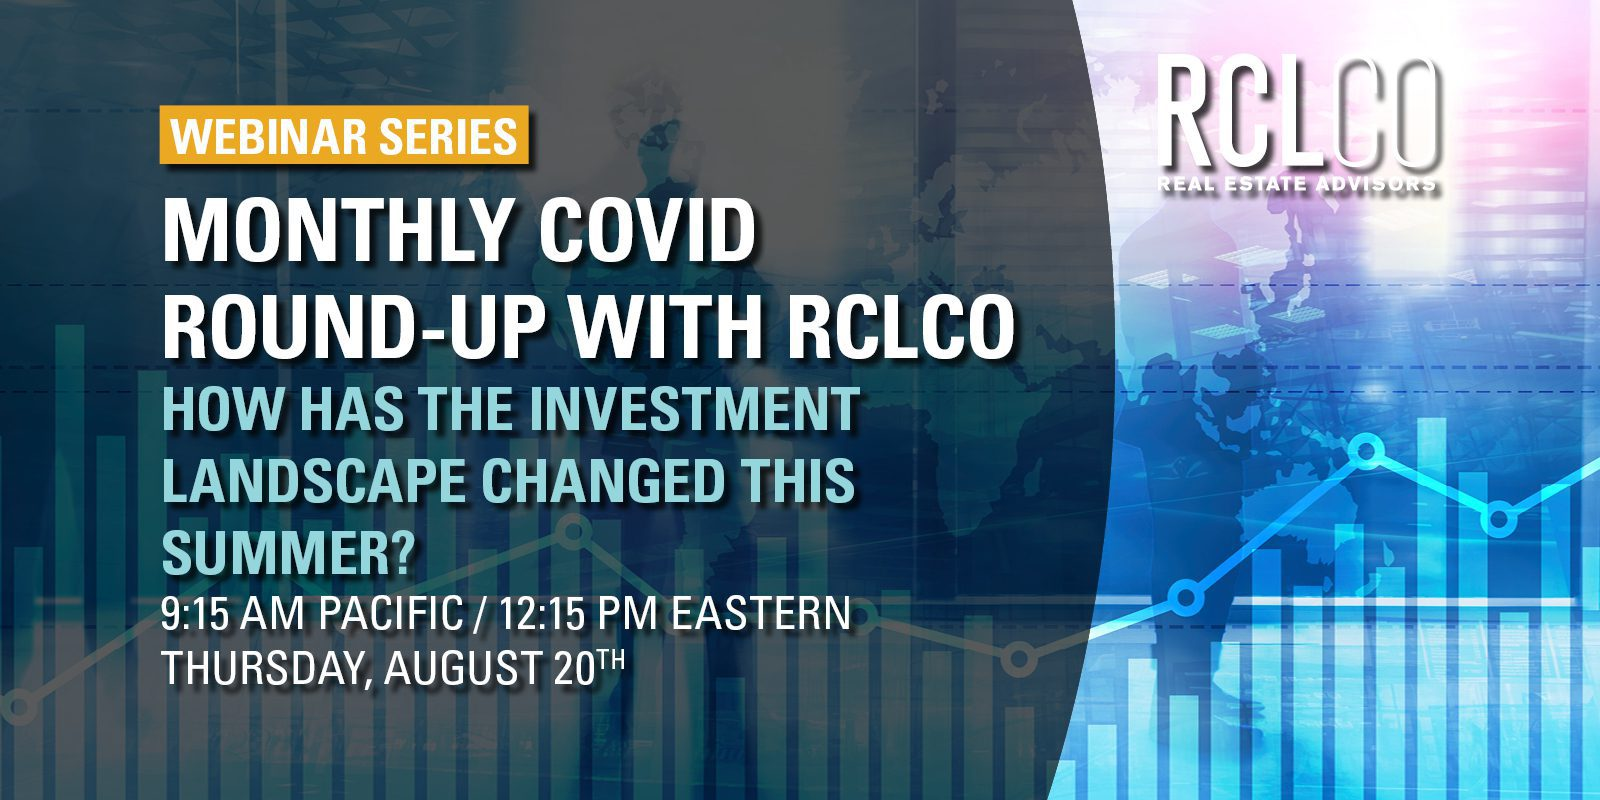 RCLCO COVID Round-Up: August 20, 2020